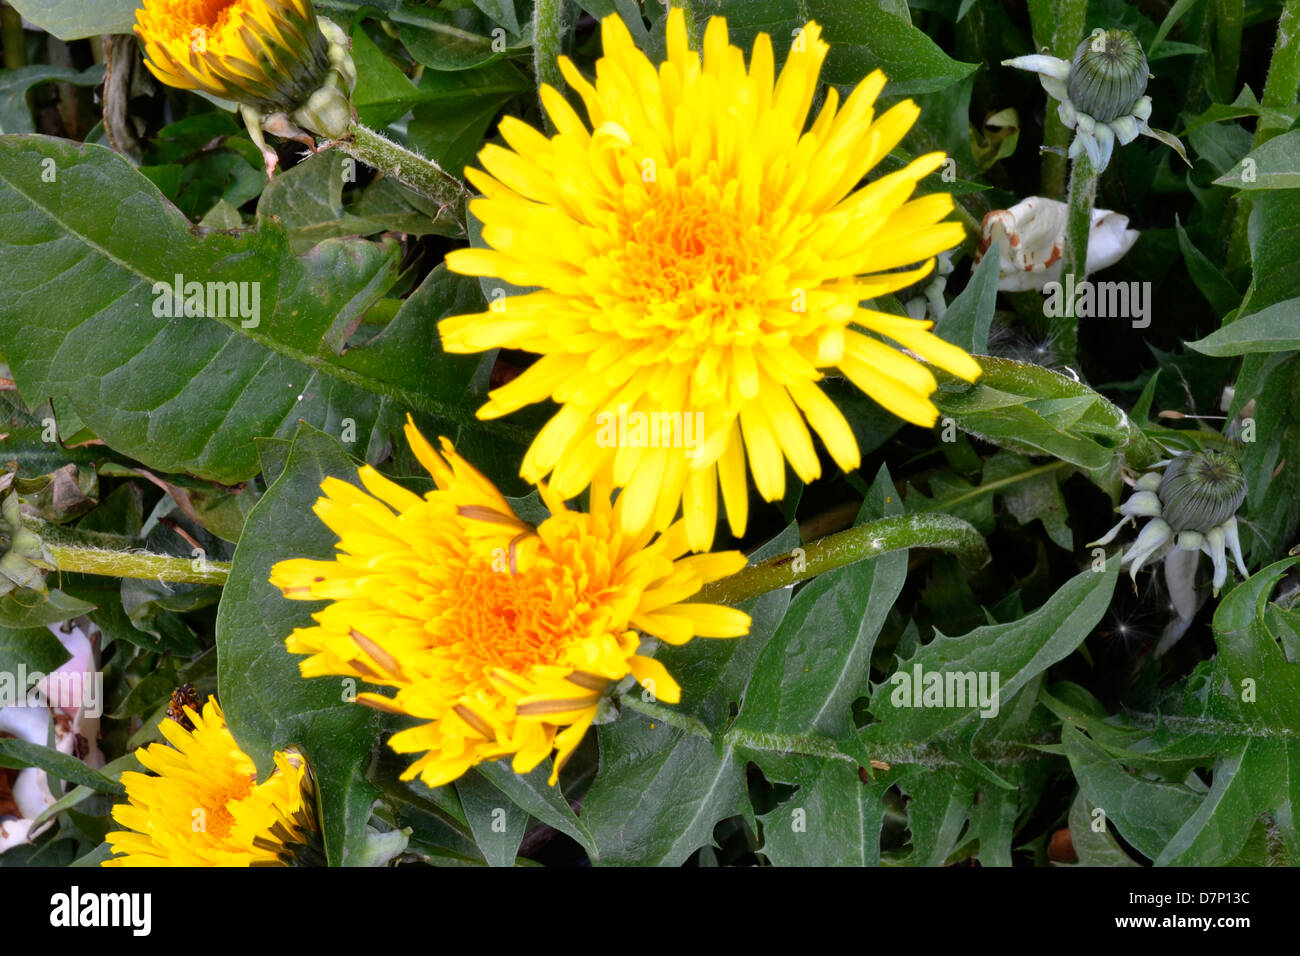 DANDELION FLOWER YELLOW - Stock Image